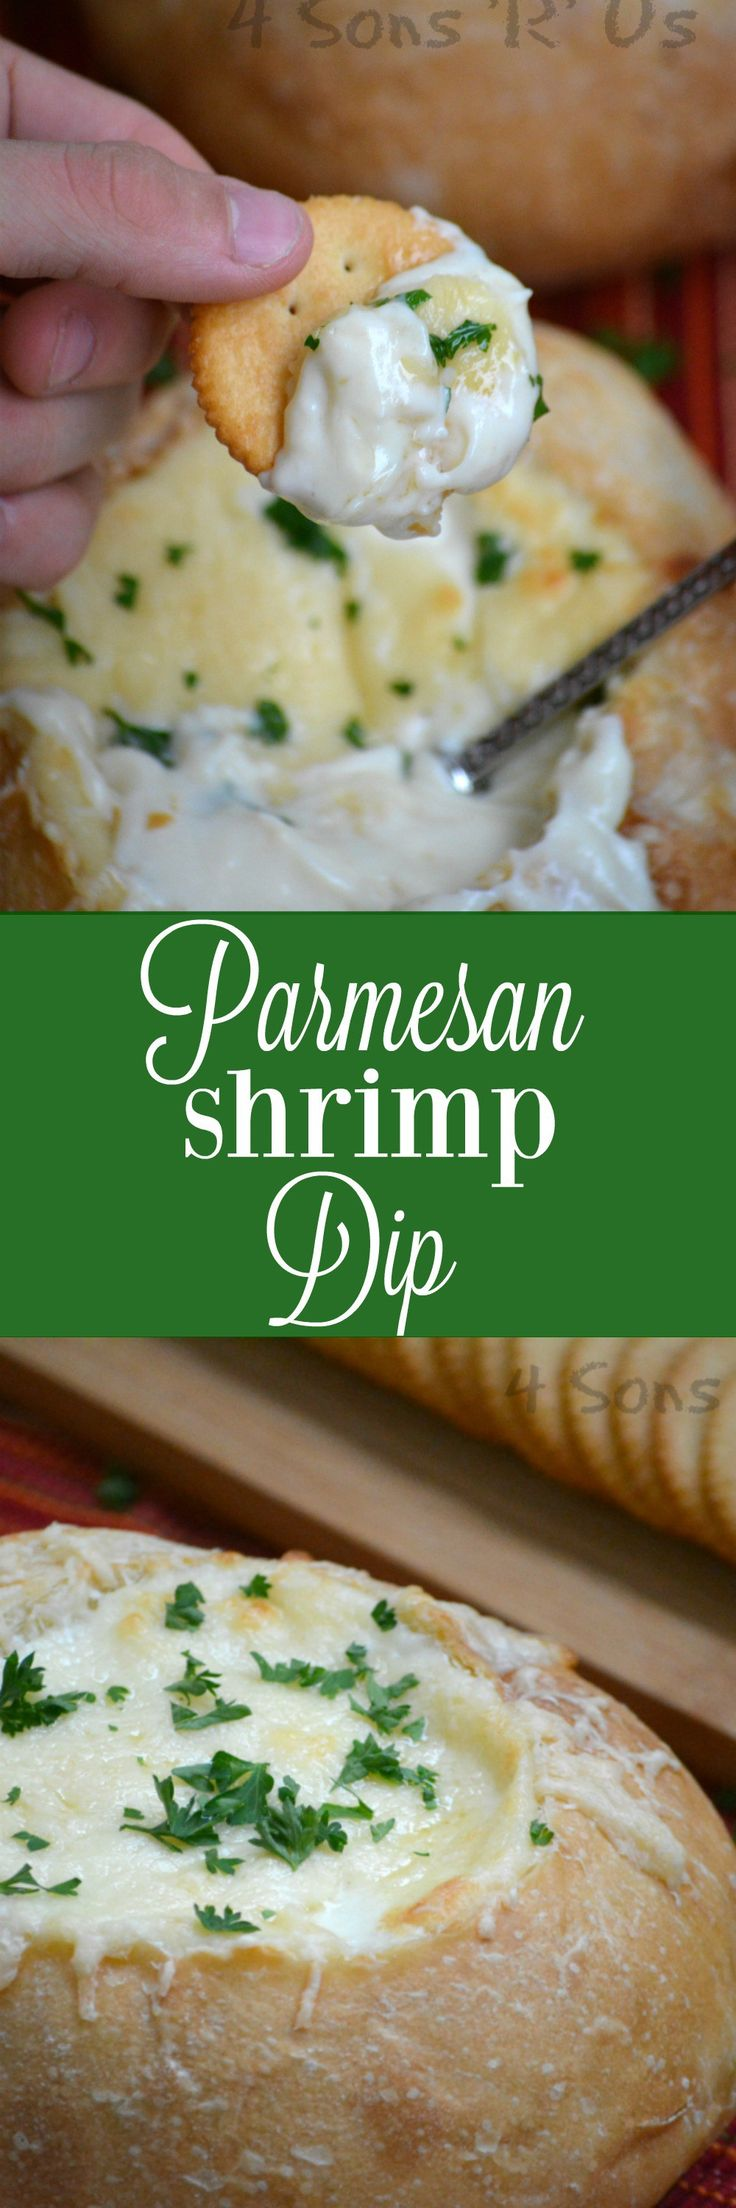 This Parmesan Shrimp Dip is so creamy, it's also cheesy with hints of garlic and packed with chunks of fresh shrimp. Baked in a crispy bread bowl, it's a perfect appetizer to be the center of any table >>>>  https://ooh.li/9a00833 @StellaCheese #StellaCheeses #QualitySince1923 #ad